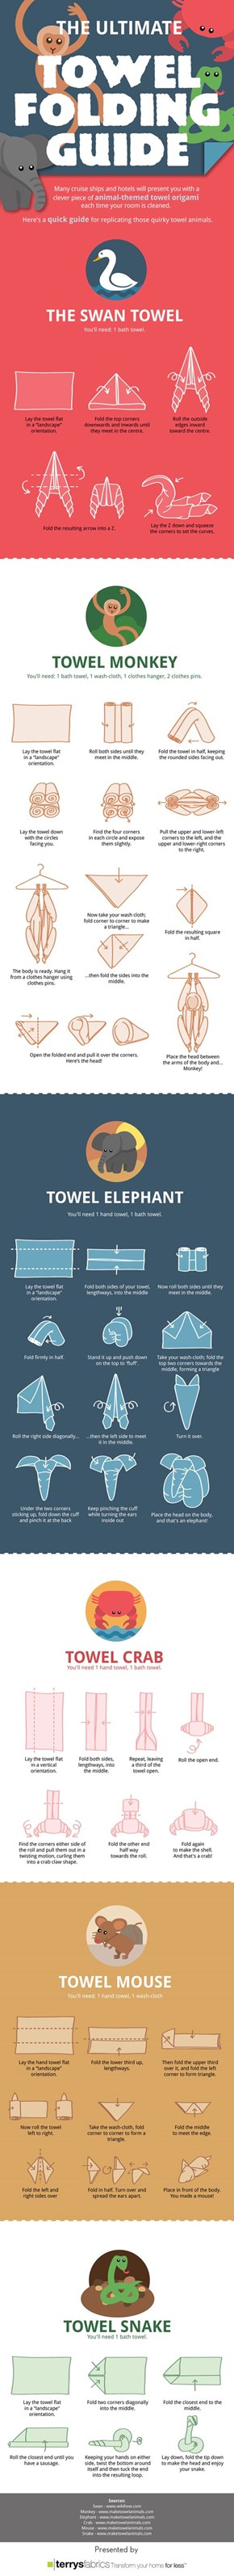 Impress Everyone! Follow This Ultimate Towel Folding Guide